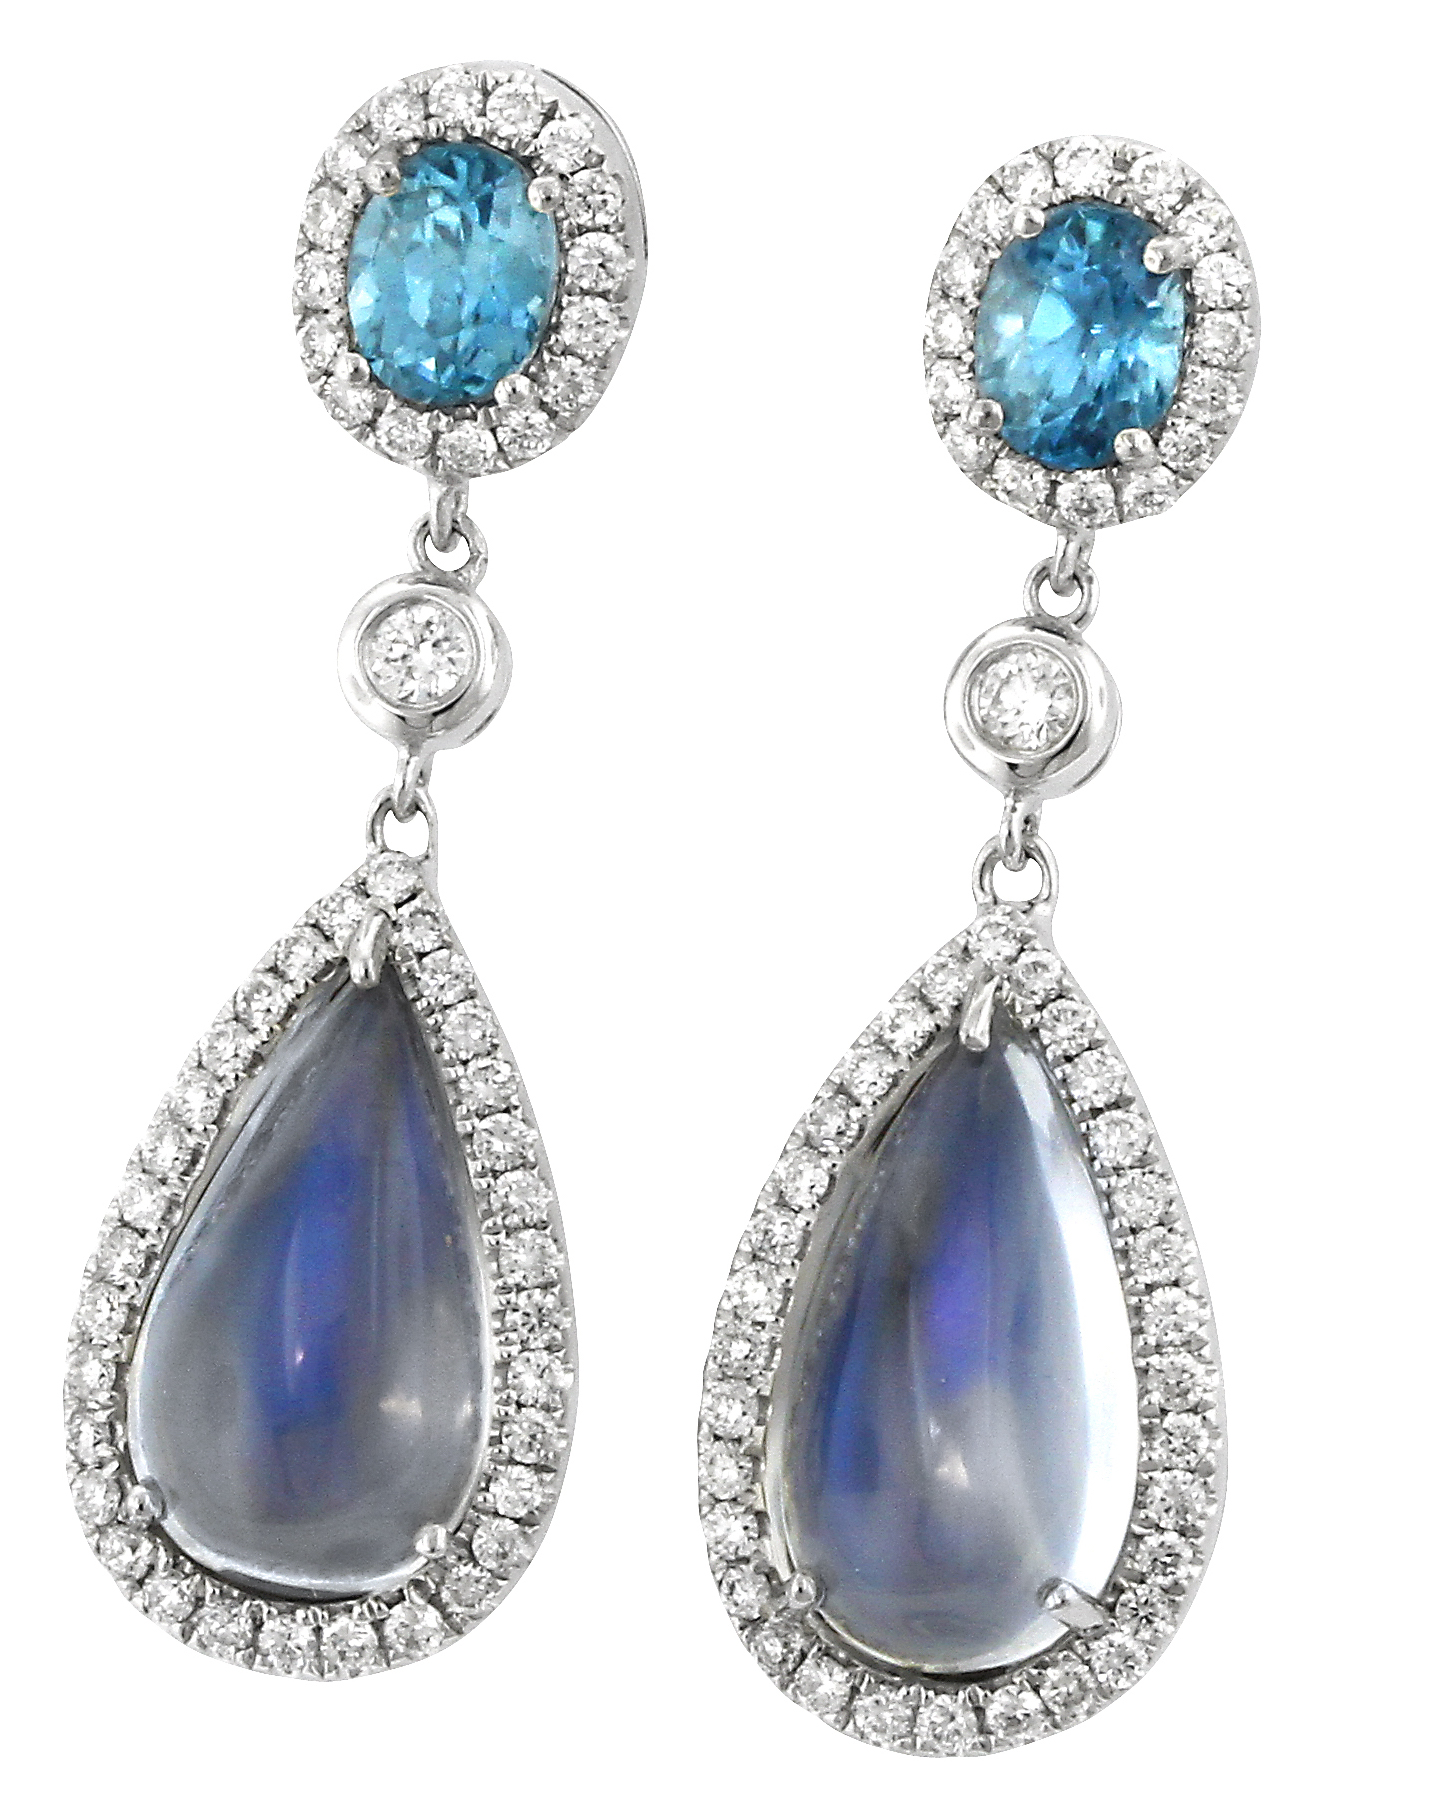 Yael Designs moonstone and blue zircon drop earrings | JCK On Your Market